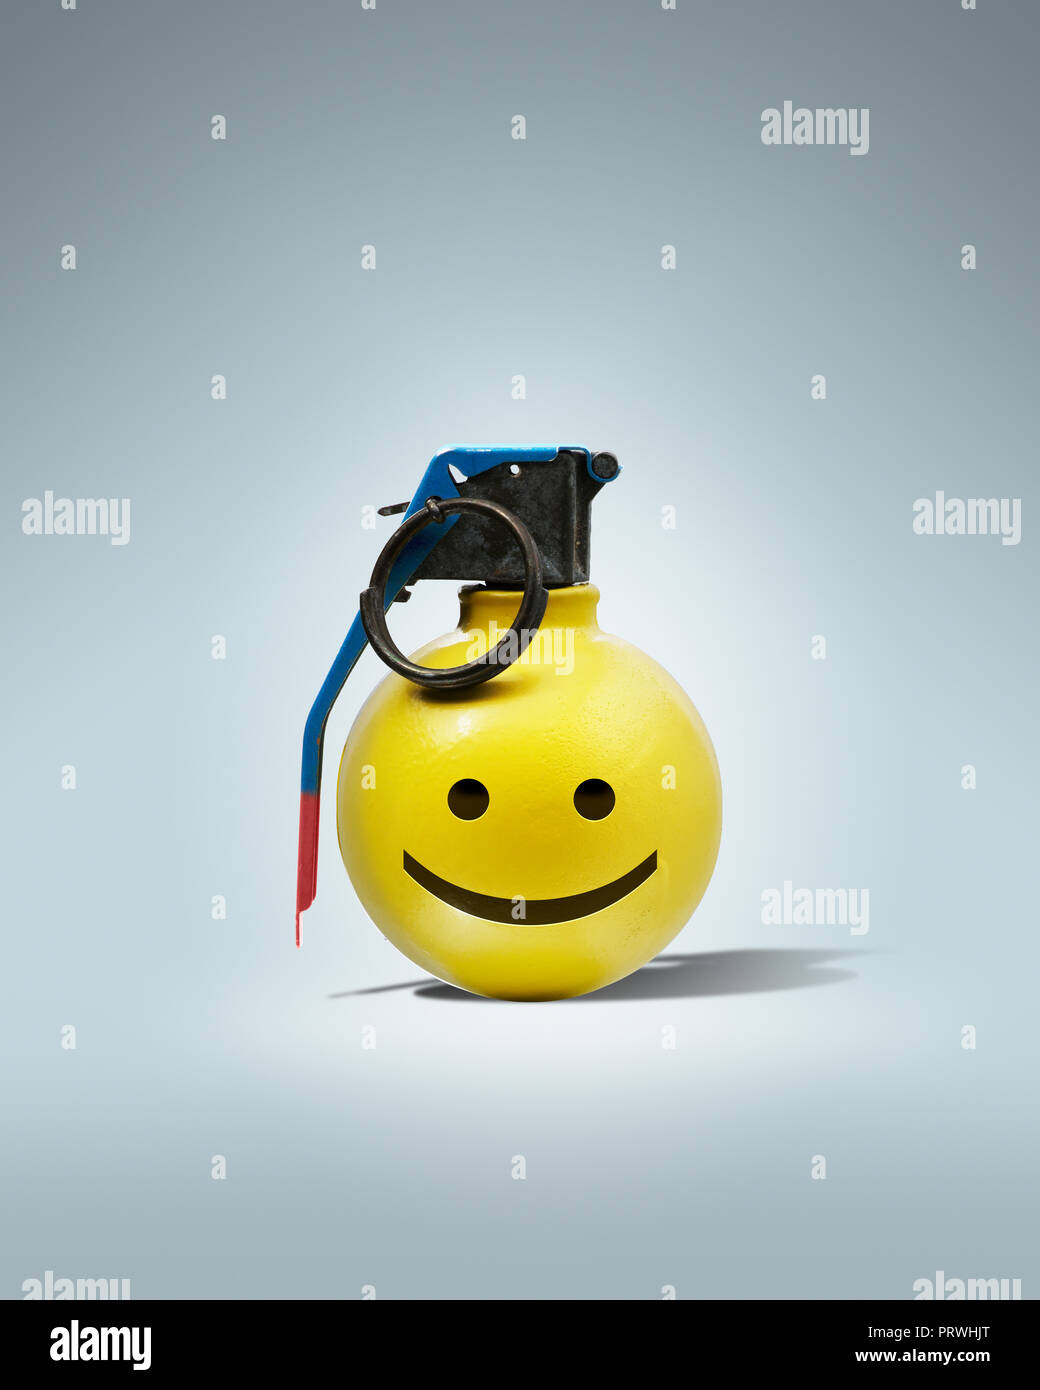 Yellow Round Hand Grenade, Bomb with smile smily face Concept - Stock Image